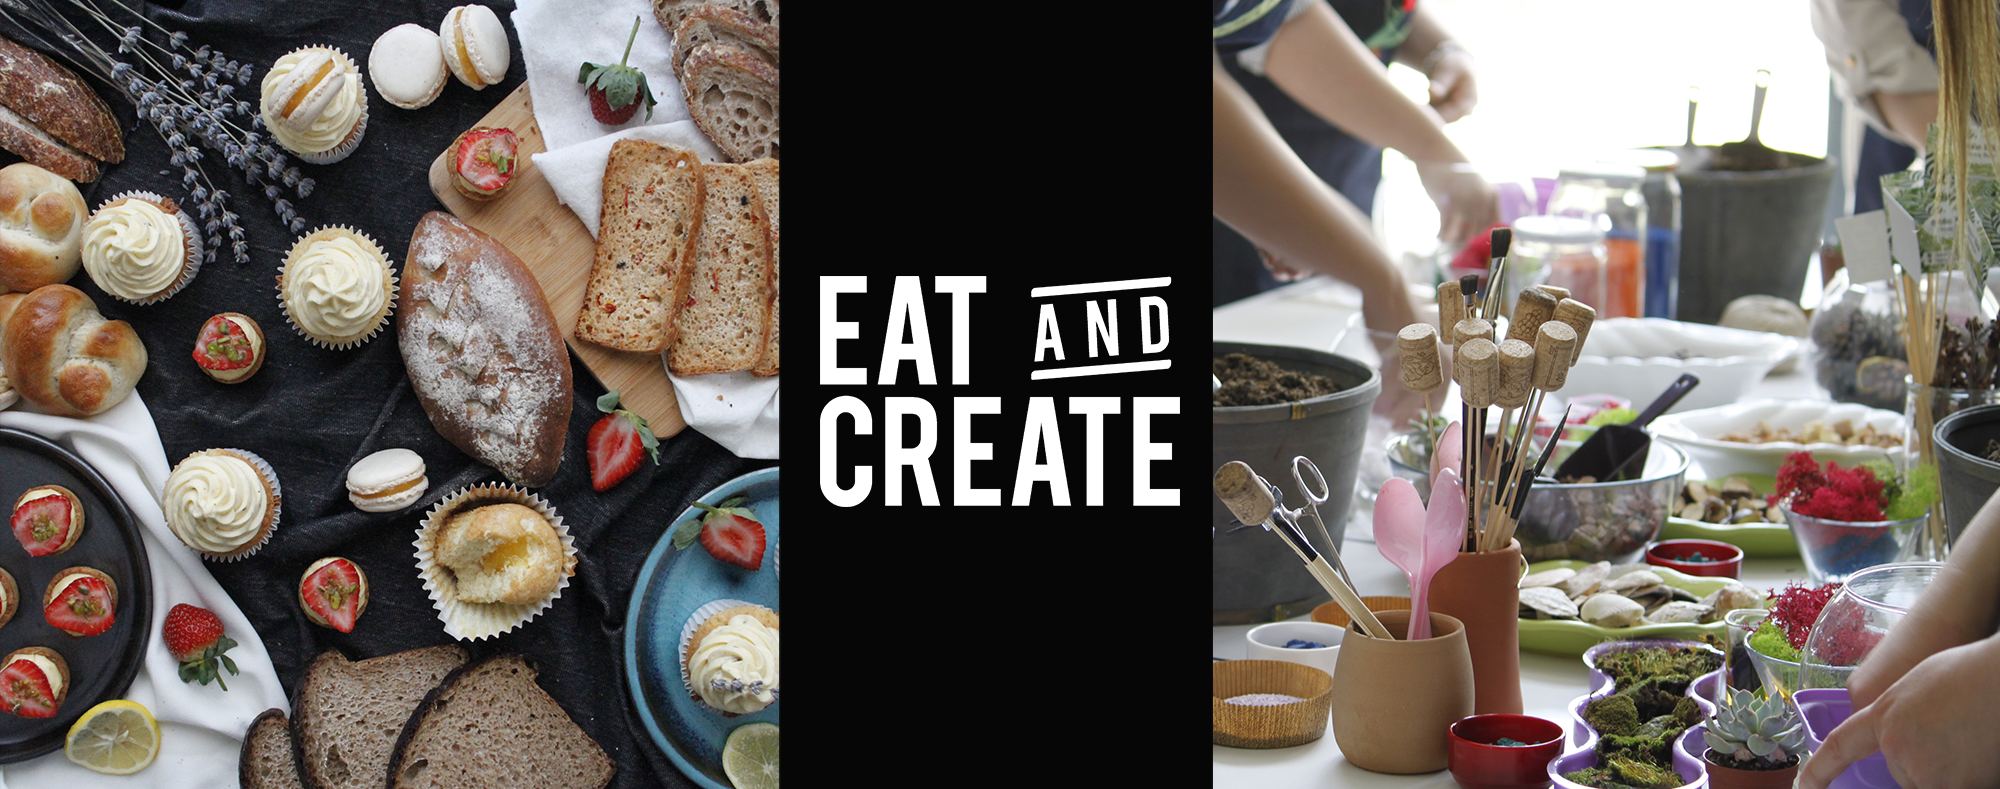 Eat and Create